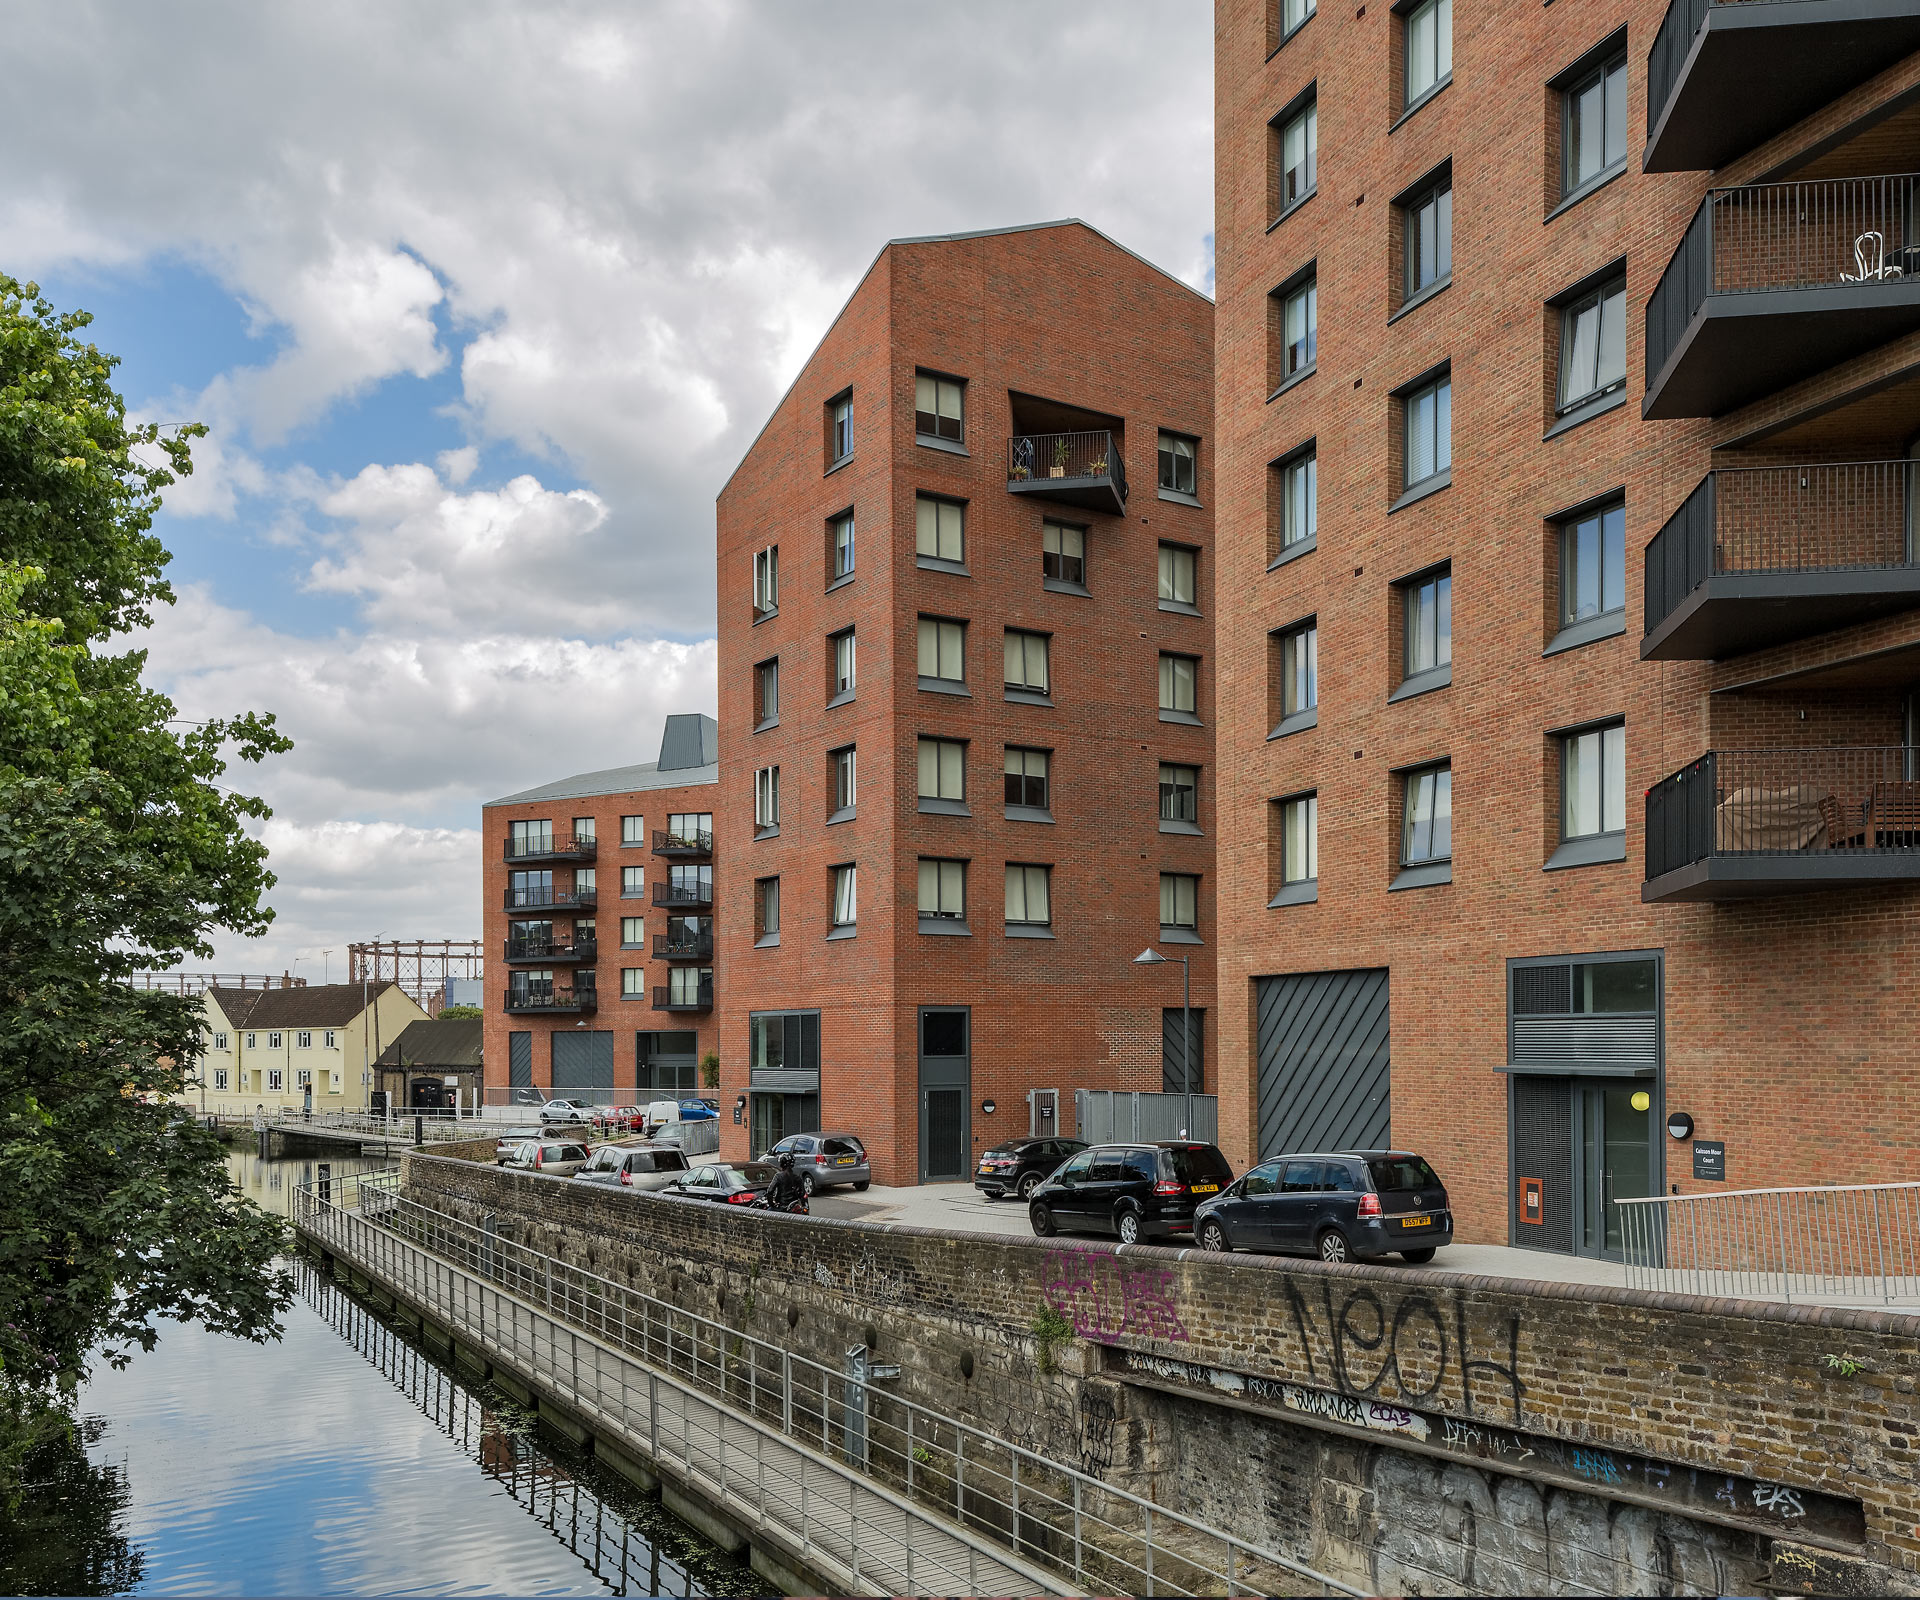 Street Housing: Lock Keepers Shortlisted At The Housing Design Awards